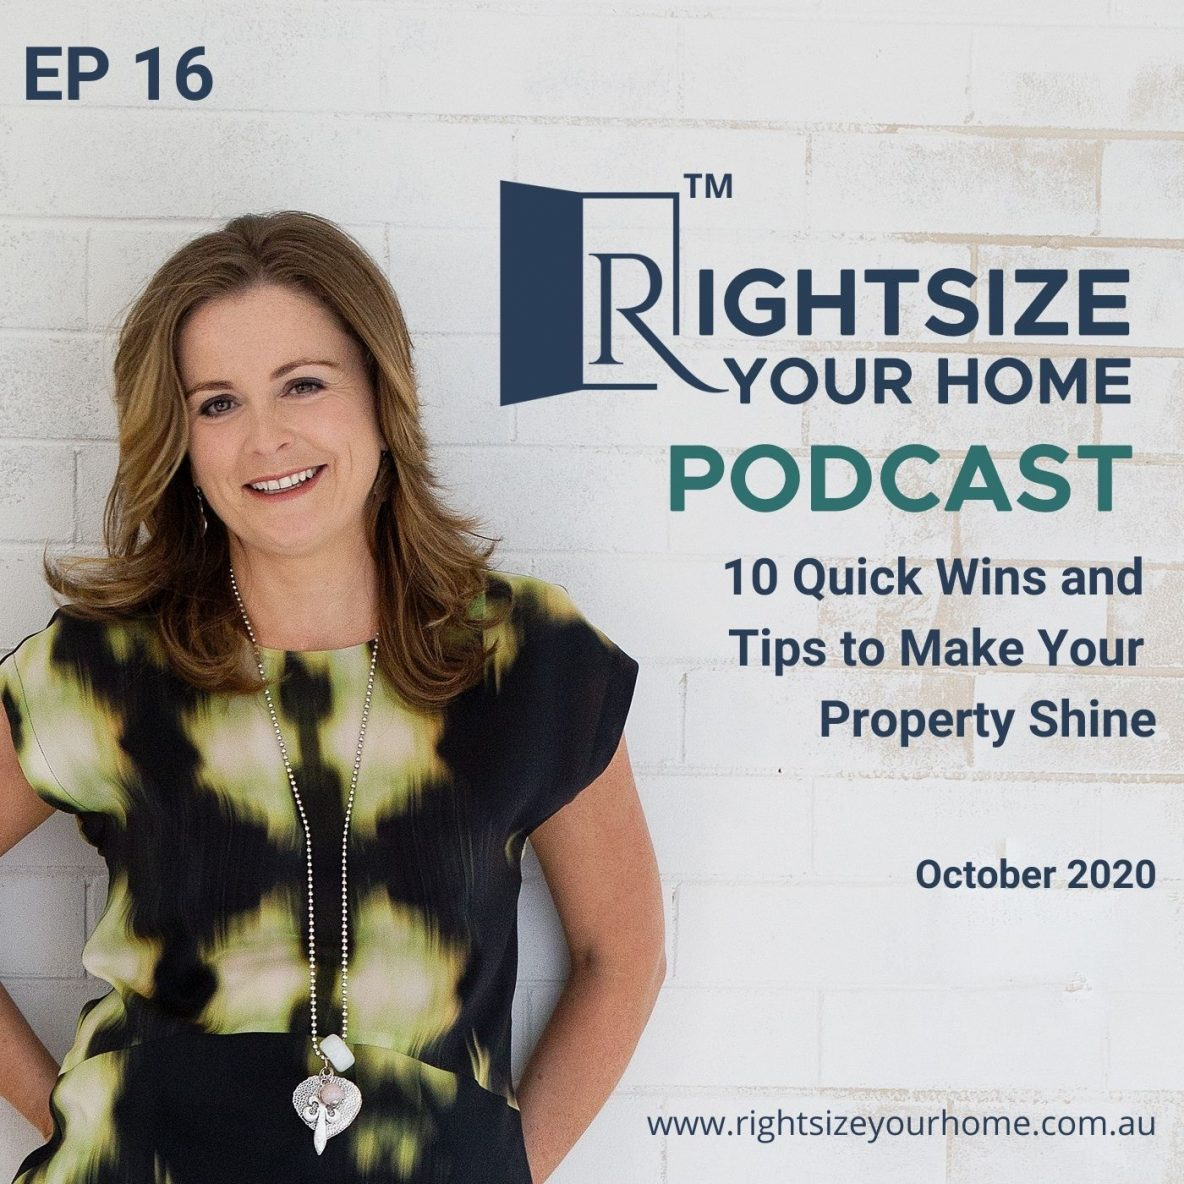 10 Quick Wins and Tips to Make Your Property Shine